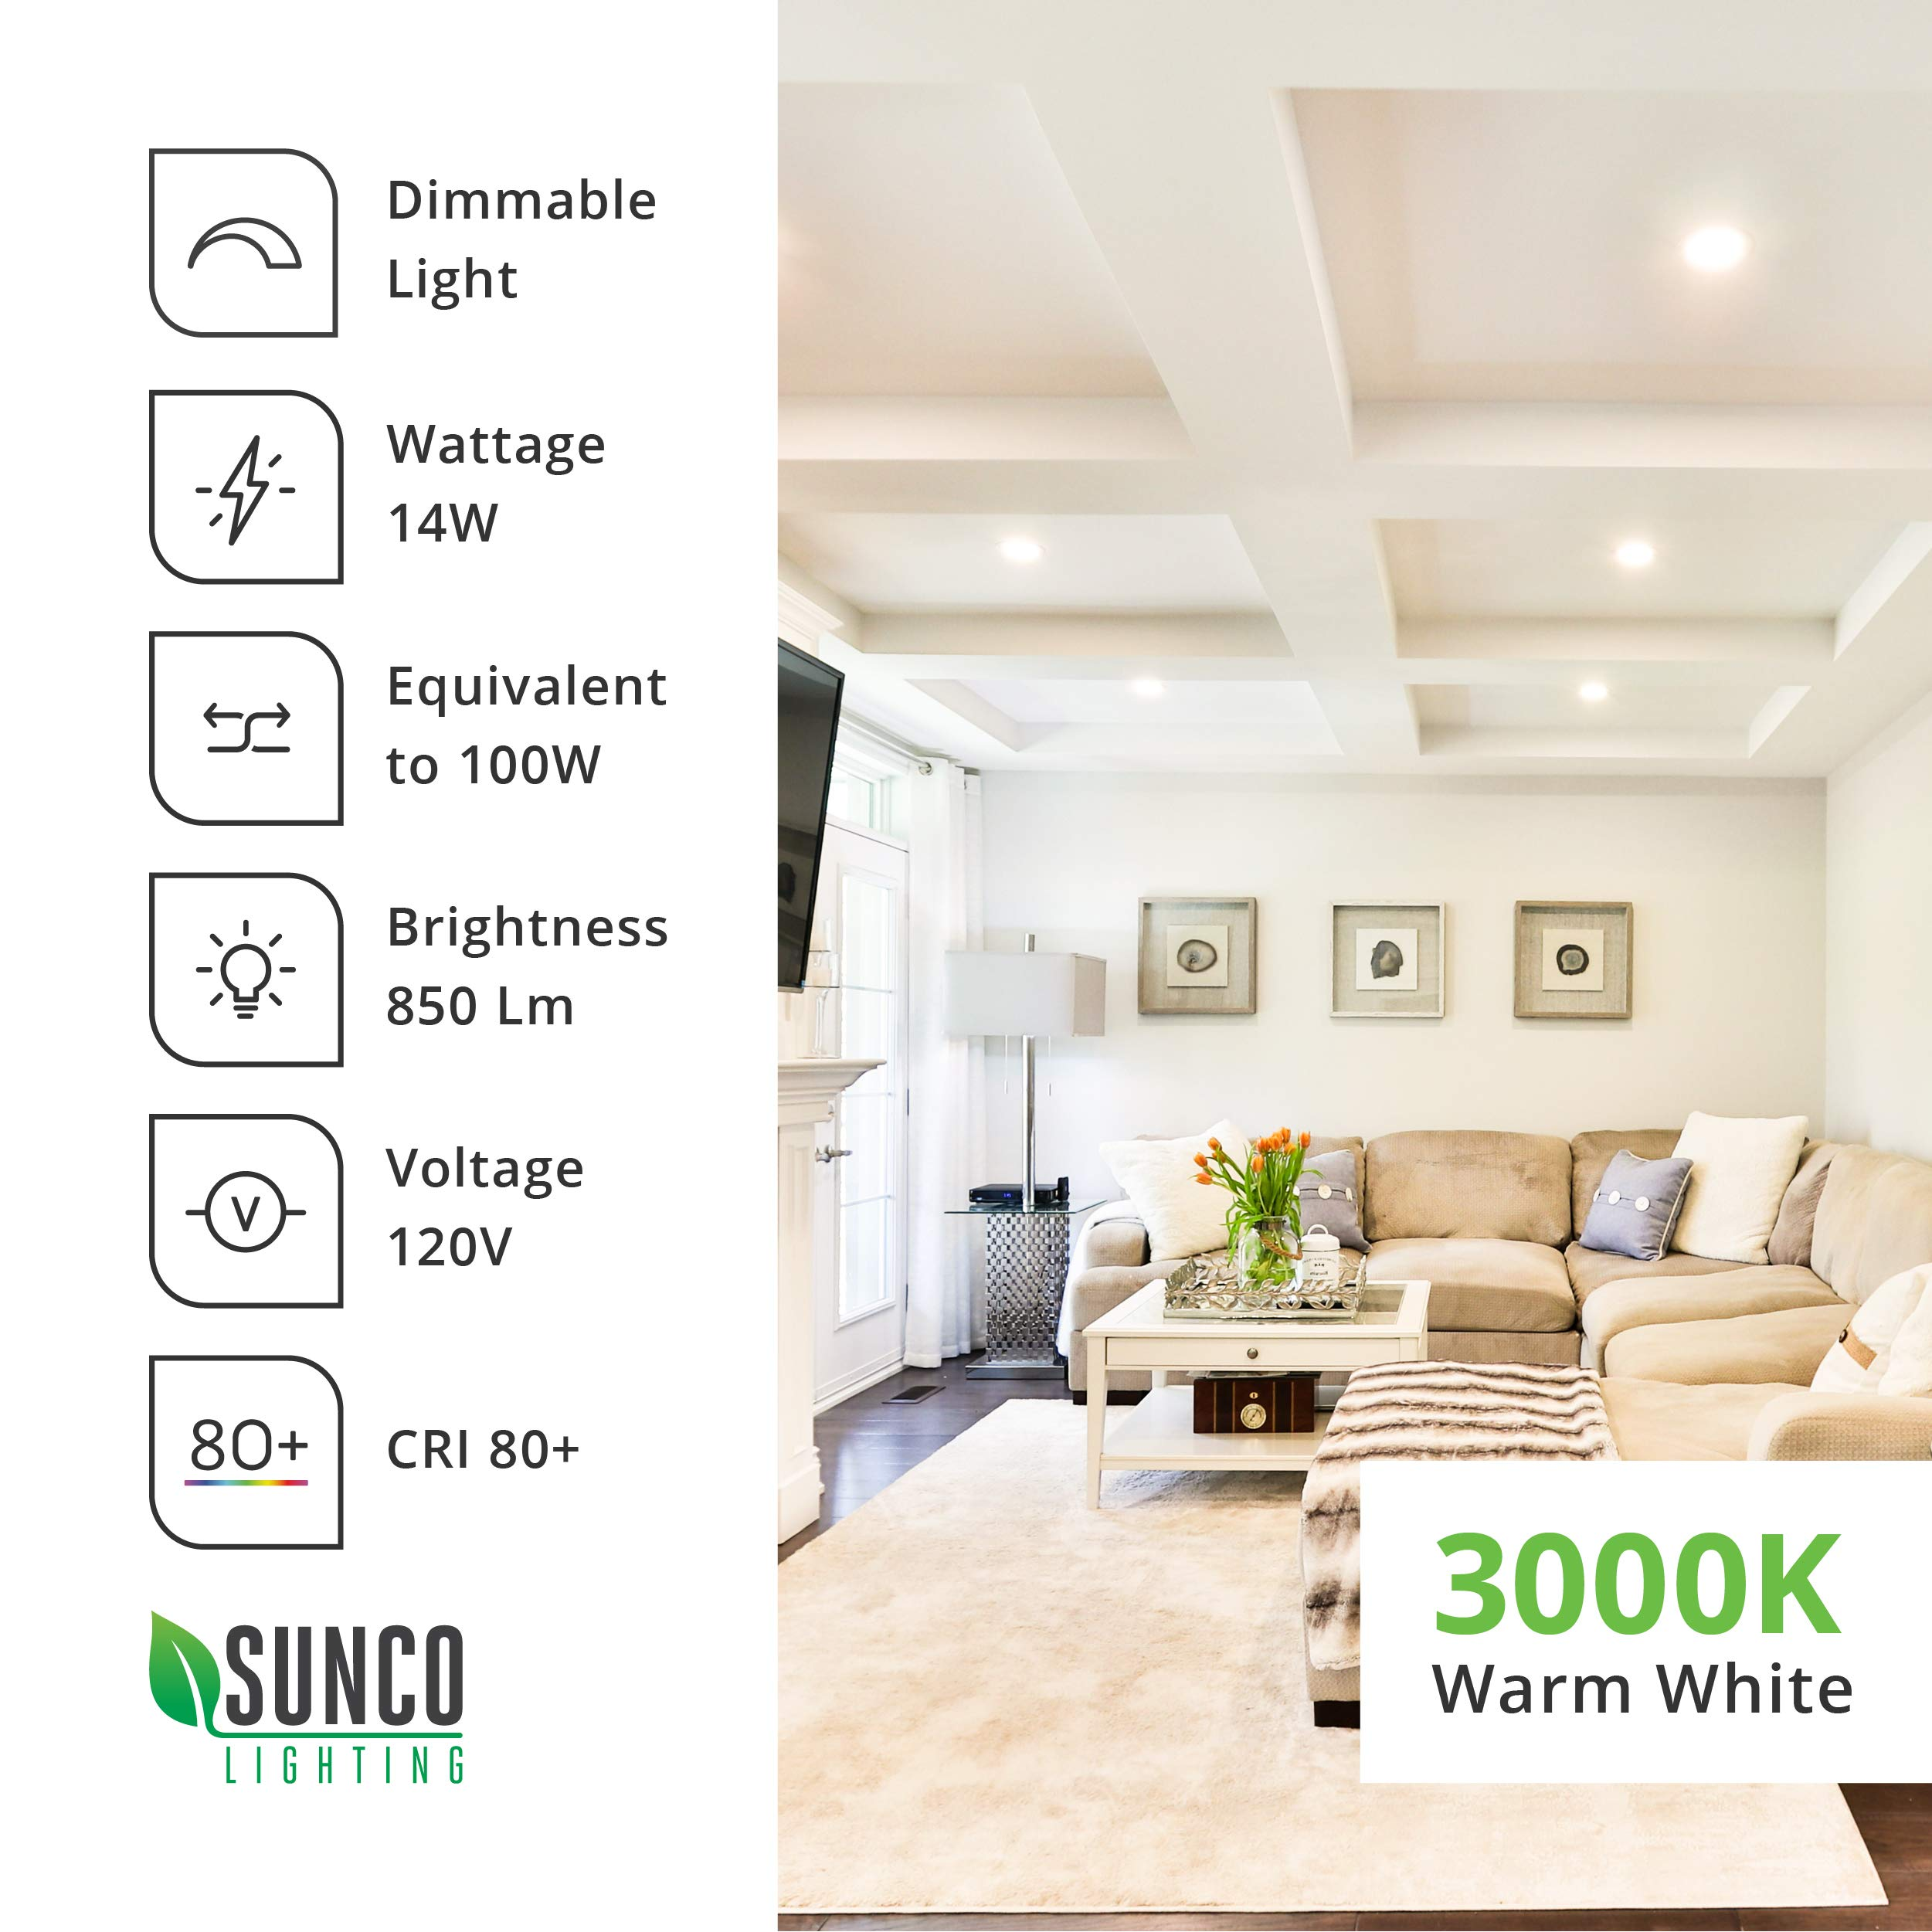 Sunco Lighting 16 Pack 6 Inch Slim LED Downlight with Junction Box, 14W=100W, 850 LM, Dimmable, 3000K Warm White, Recessed Jbox Fixture, IC Rated, Simple Retrofit Installation - ETL & Energy Star by Sunco Lighting (Image #9)